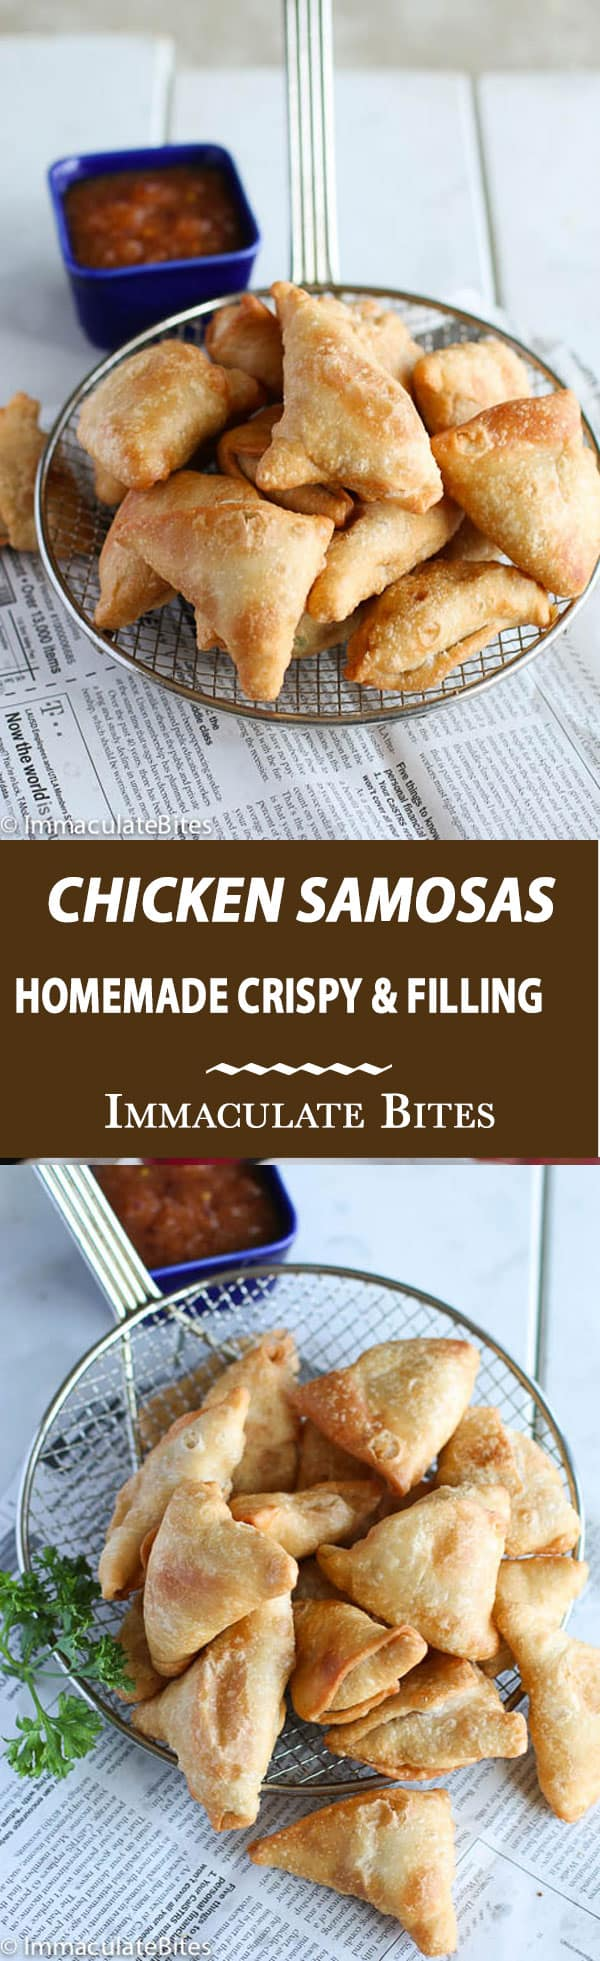 Baked or Fried Super Crispy Chicken Samosas full of chicken , peasand spiced up with just enough spices and heat